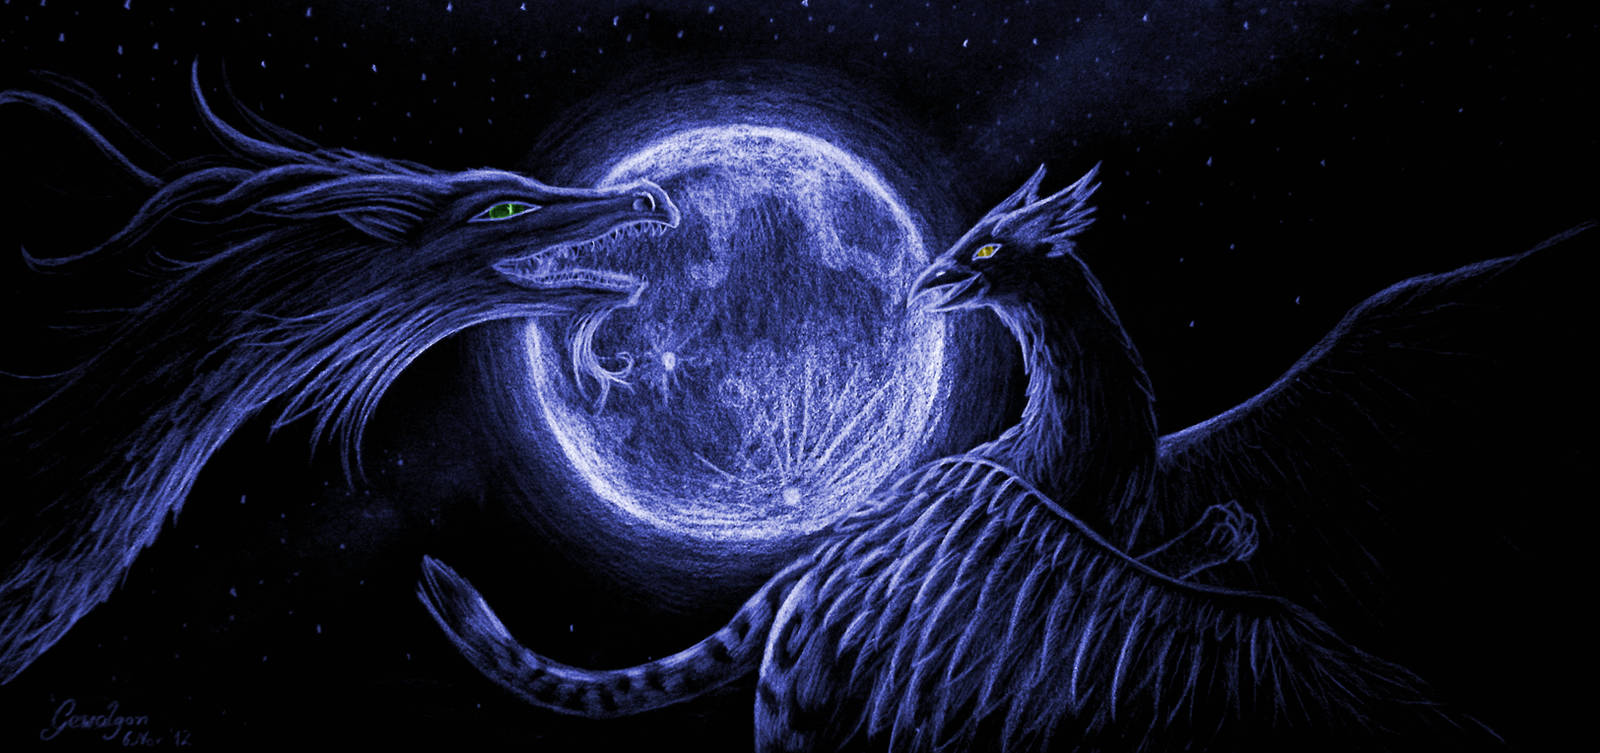 Dance of the creatures of moon by Gewalgon